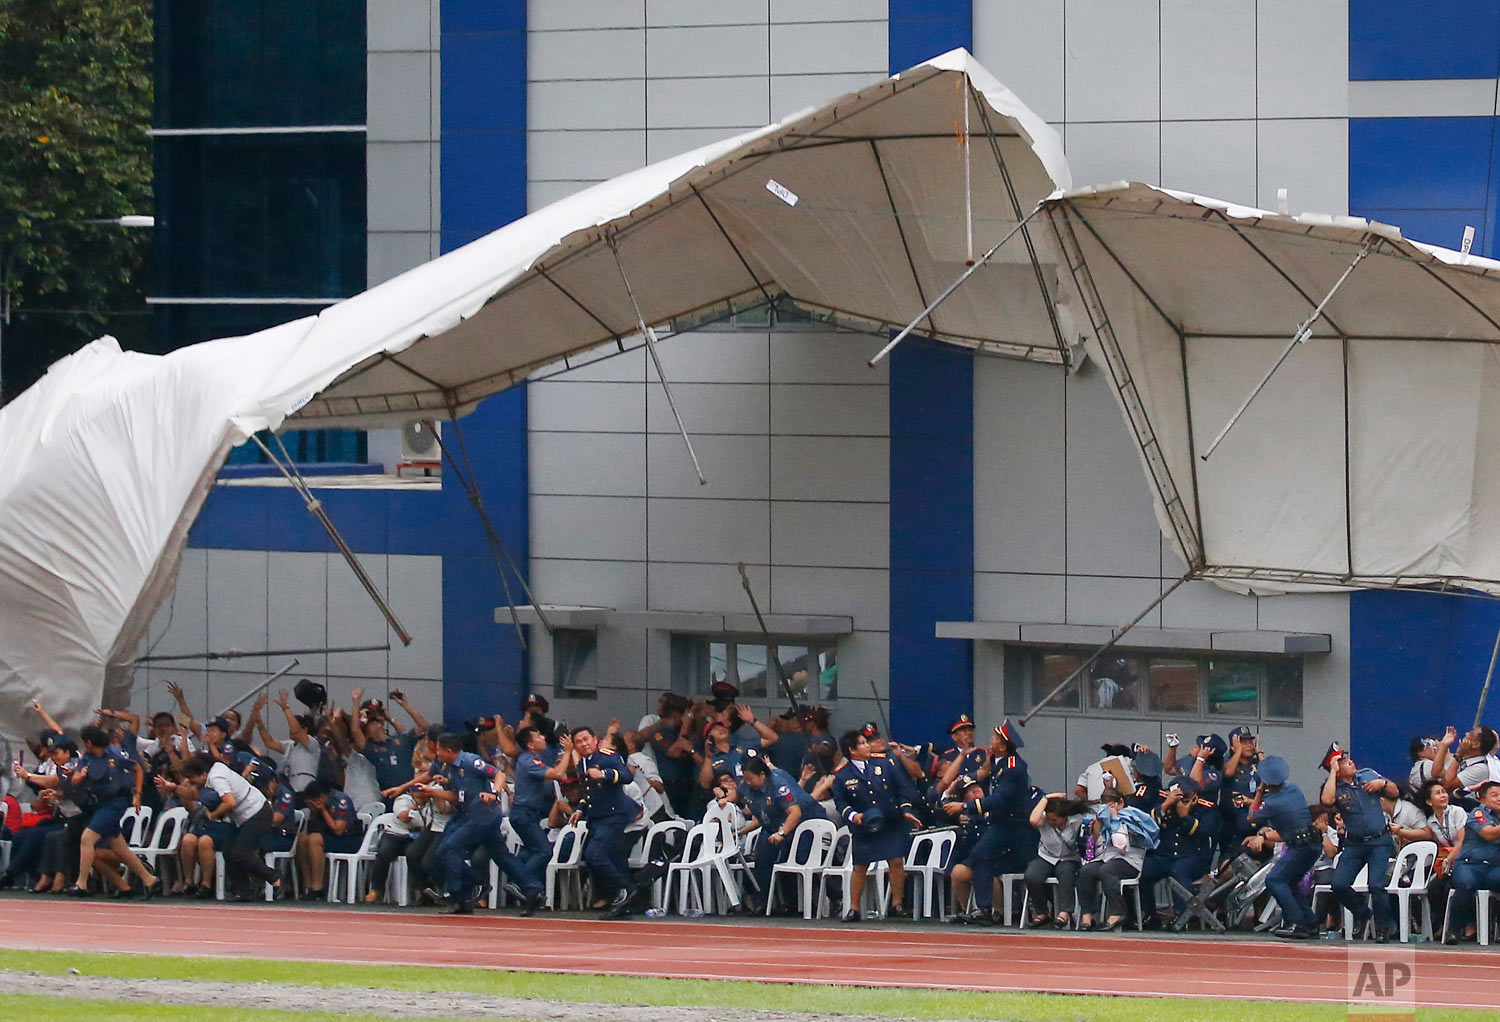 Philippine National Police officers and employees react as their tent is toppled by a hovering police helicopter performing a salute during the 117th Philippine National Police Service anniversary at Camp Crame in Quezon city, northeast of Manila, Philippines. Wednesday, Aug. 8, 2018. (AP Photo/Bullit Marquez)